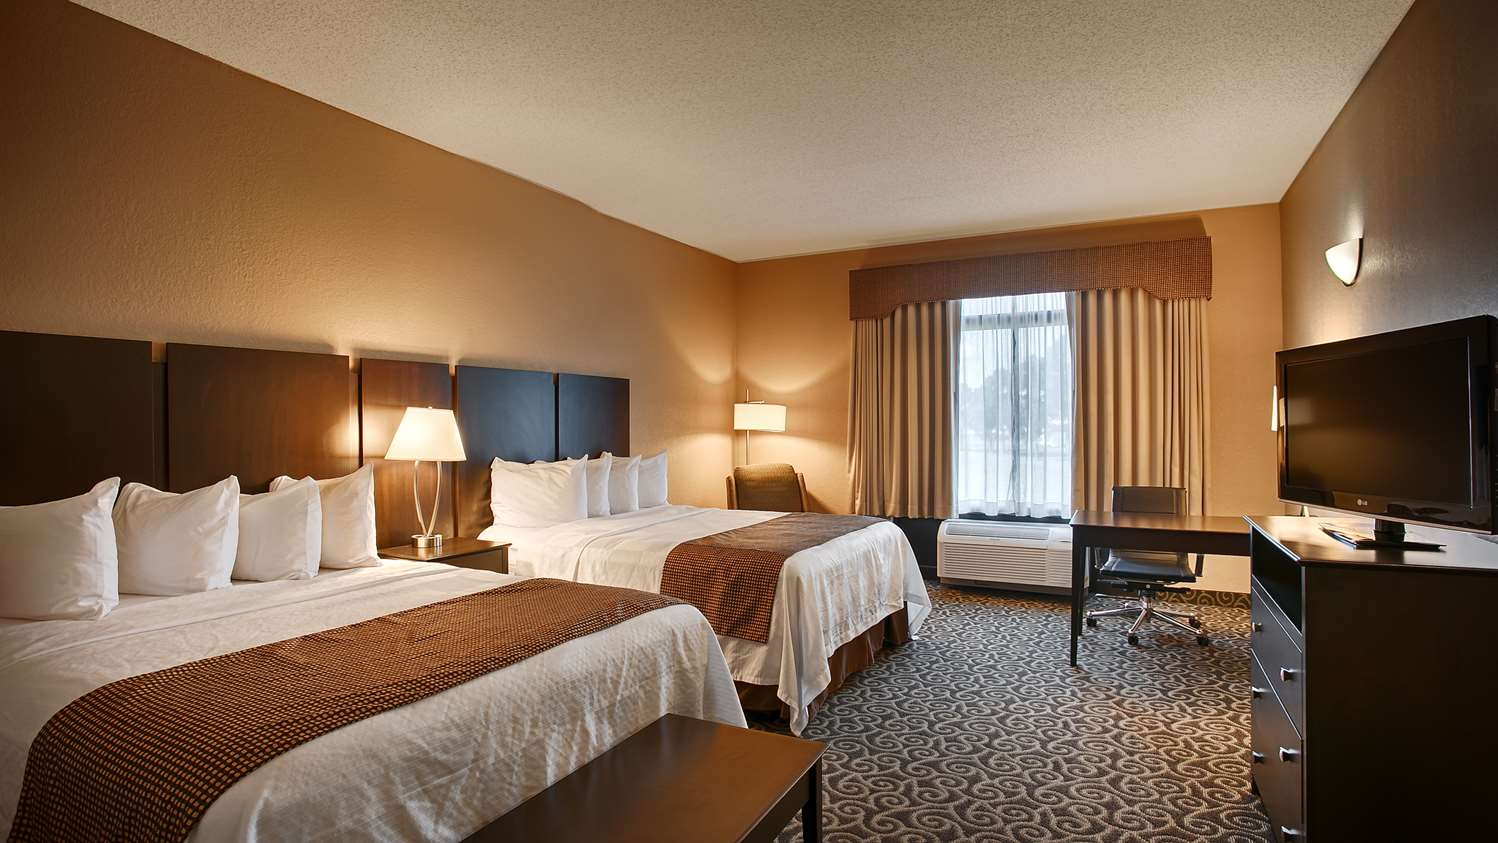 Make Yourself At Home In Our Double Queen Room